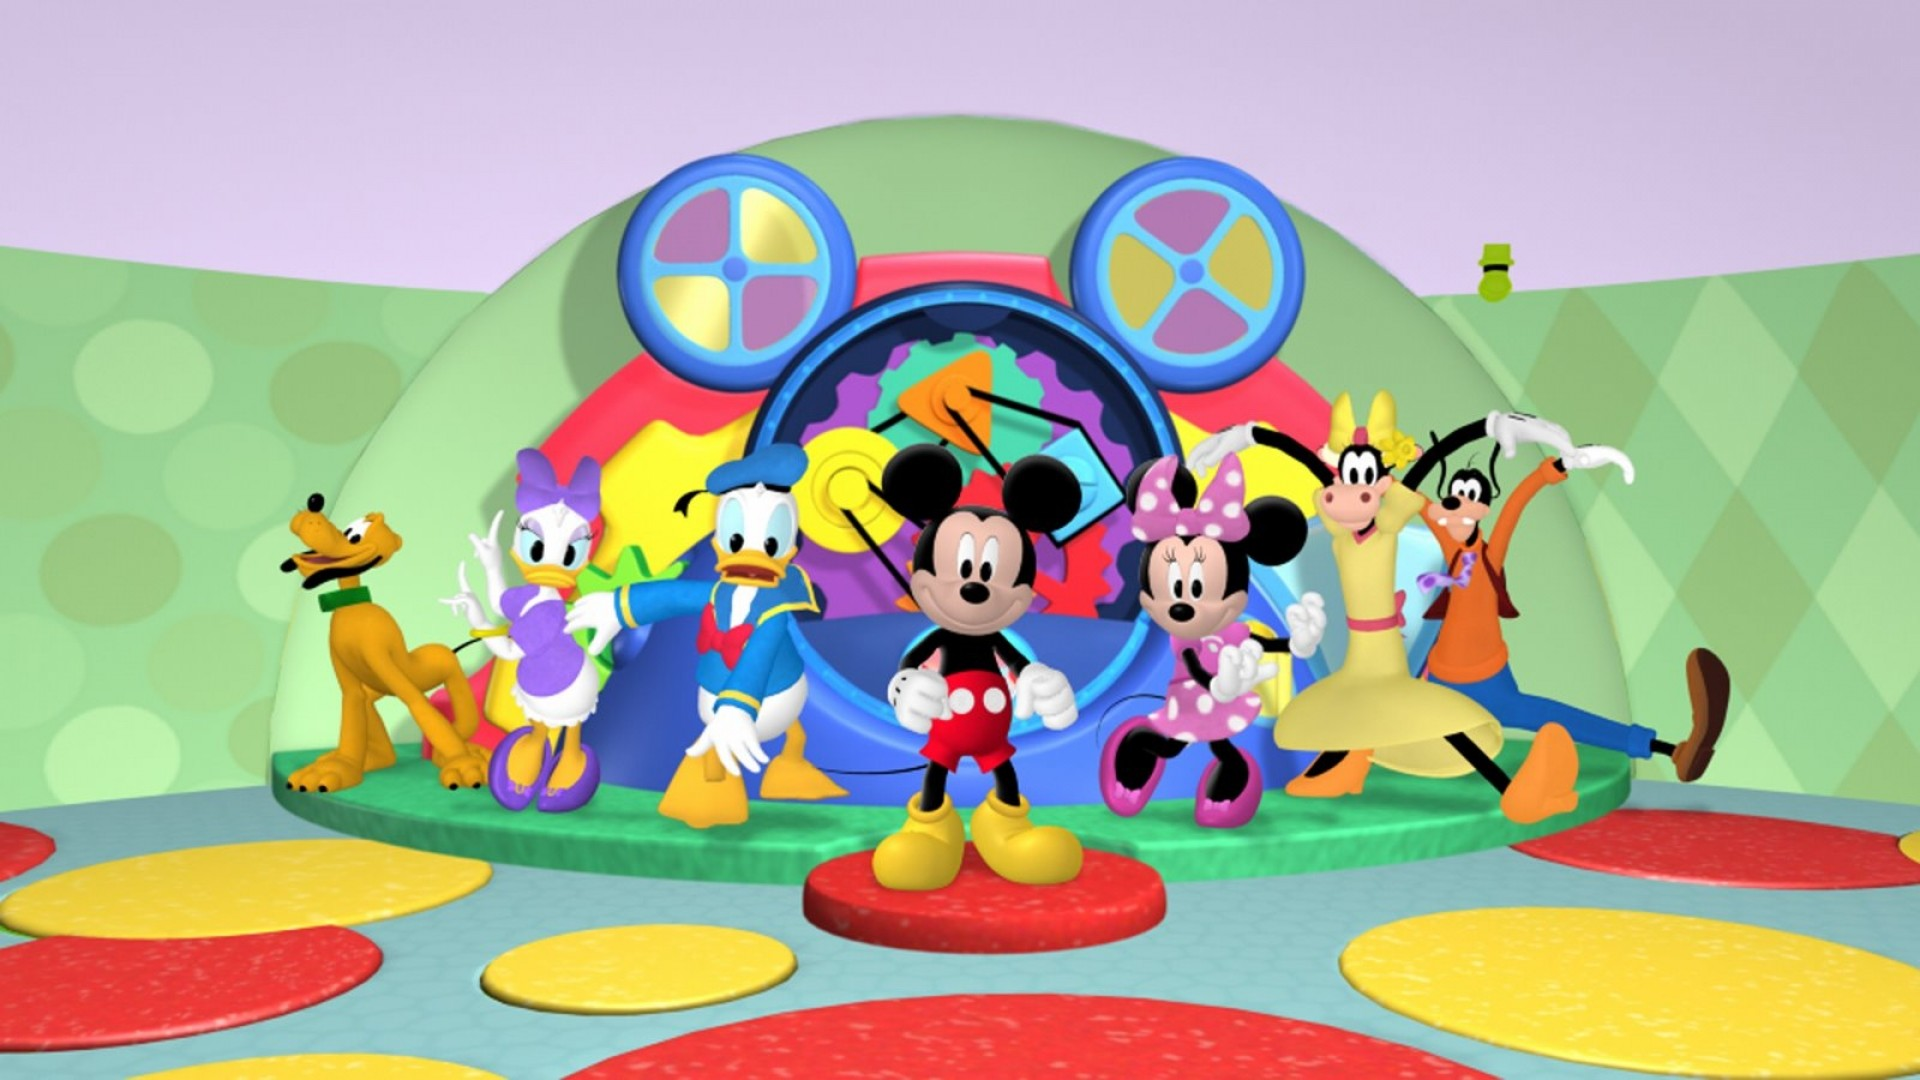 Mickey Mouse Clubhouse Wallpapers images